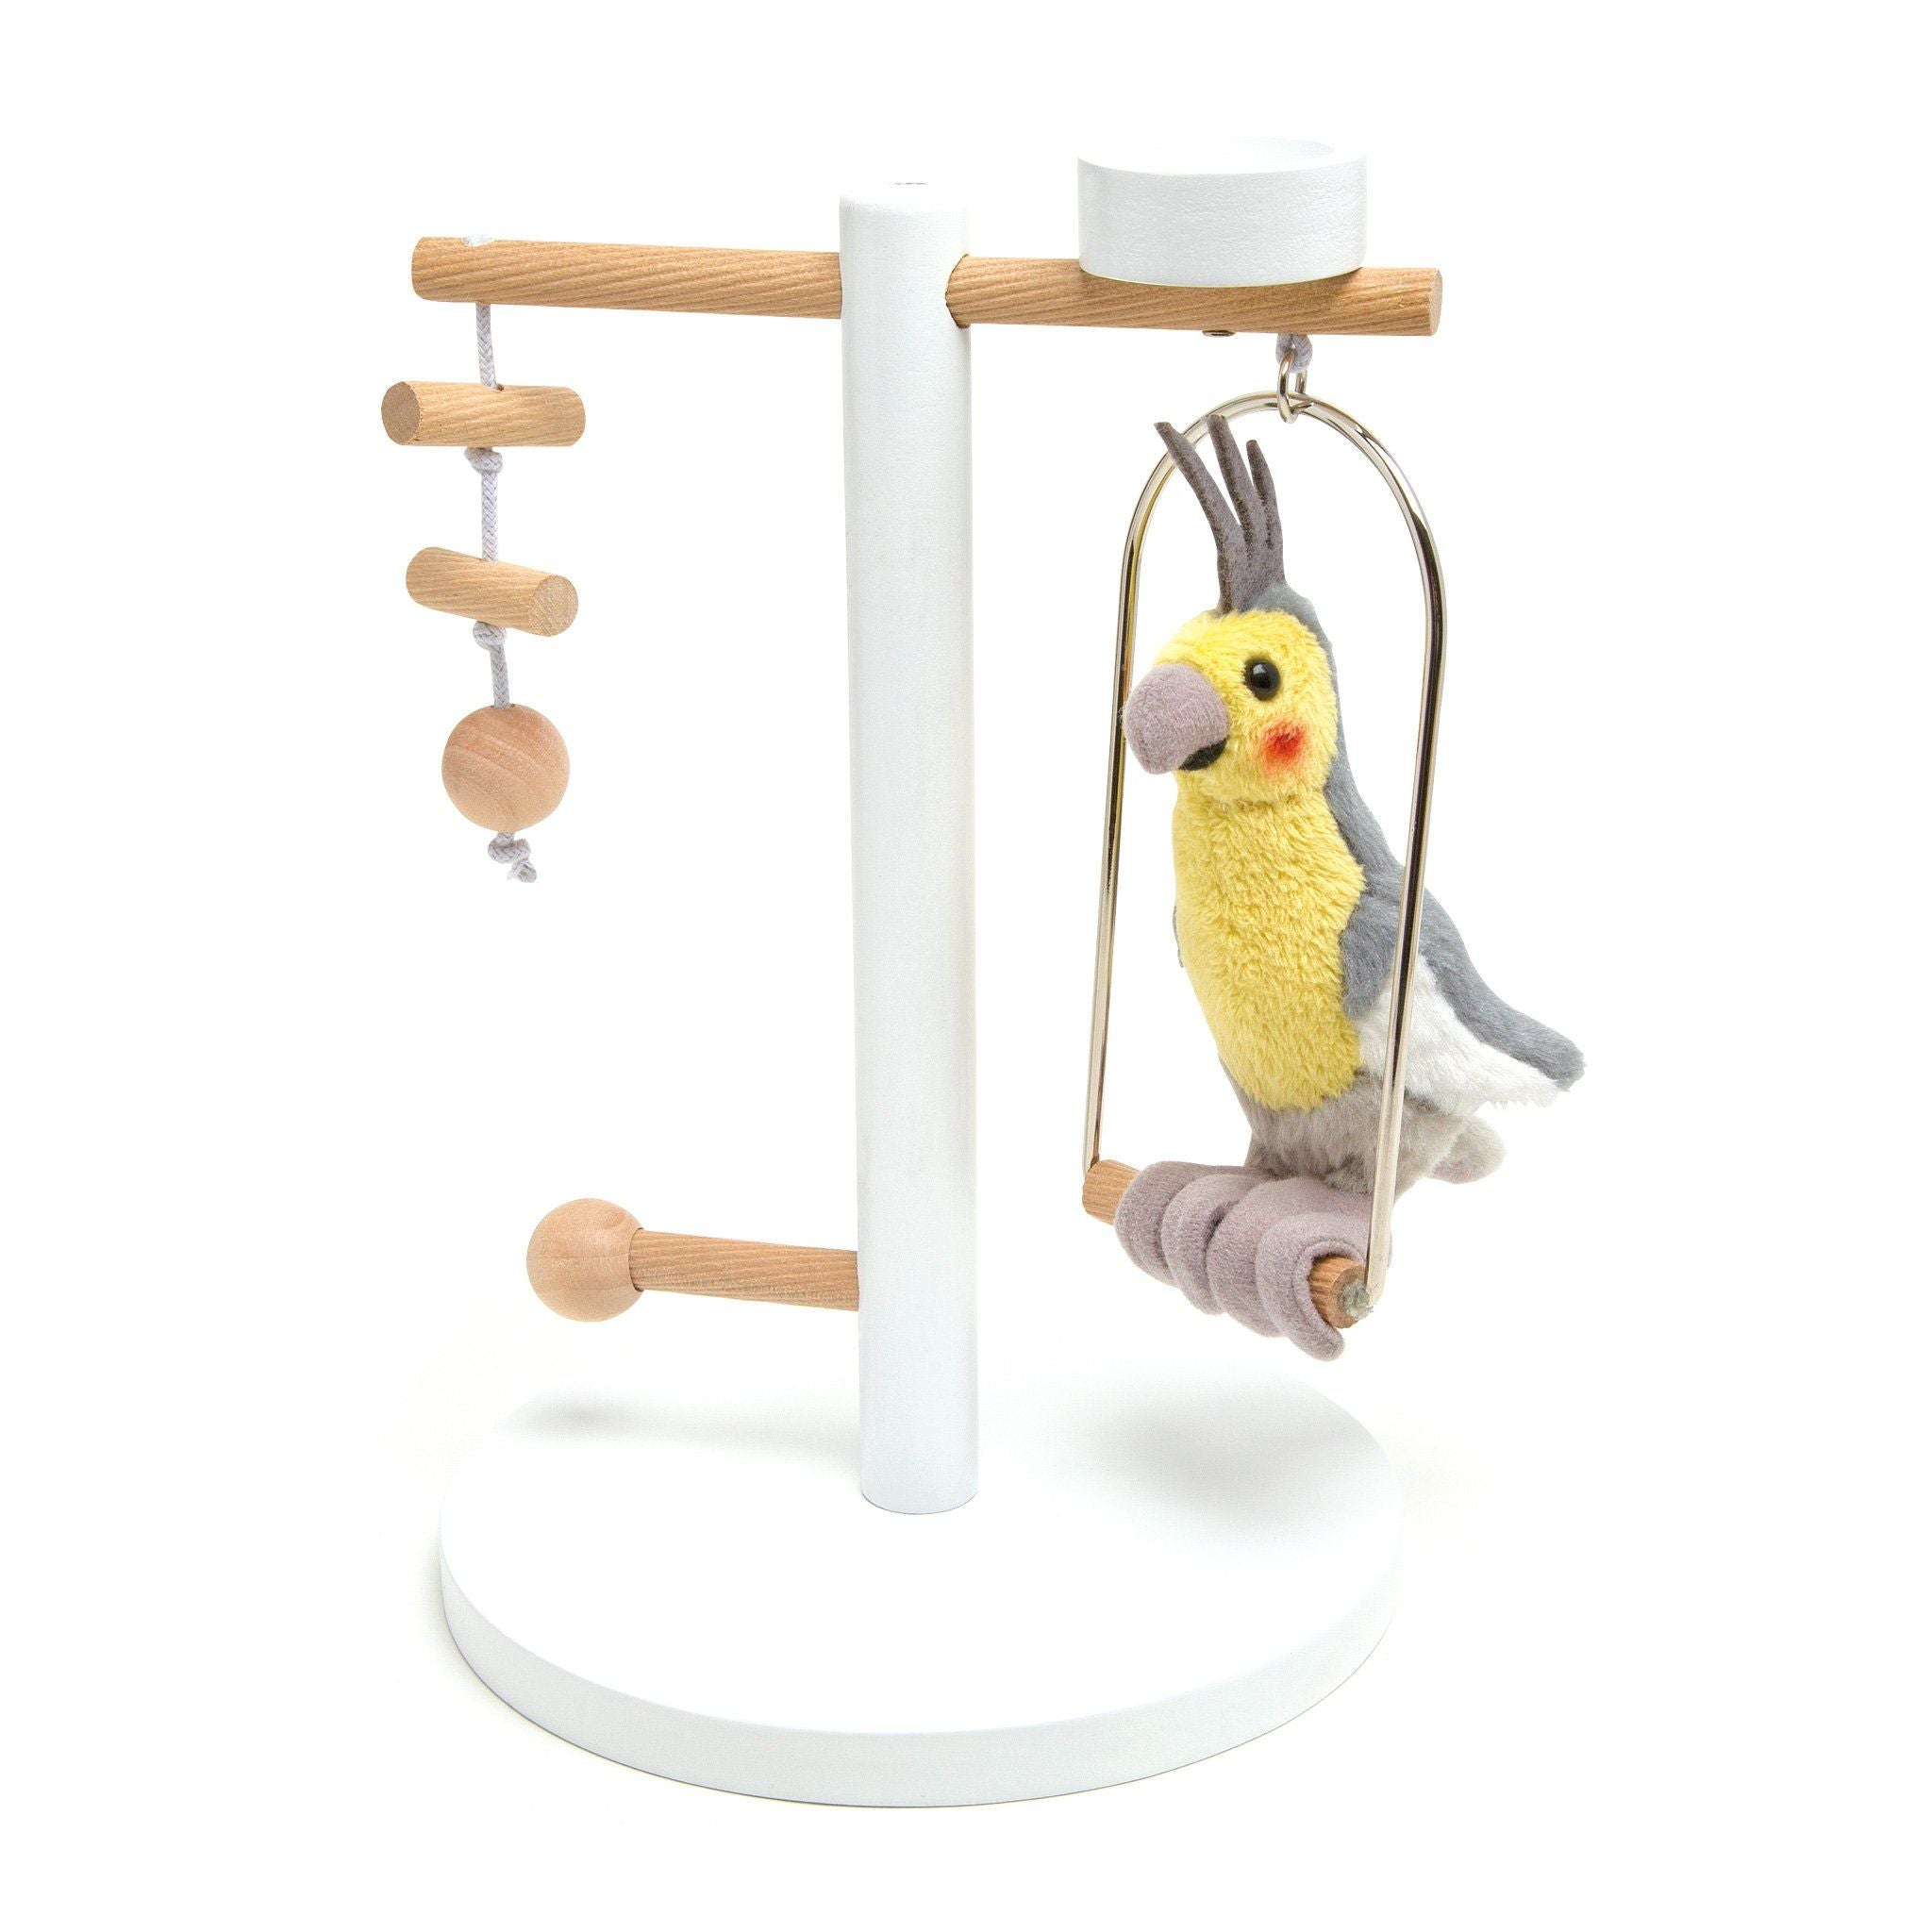 Piccolo plush cockatiel and wooden stand for all 18 inch dolls.